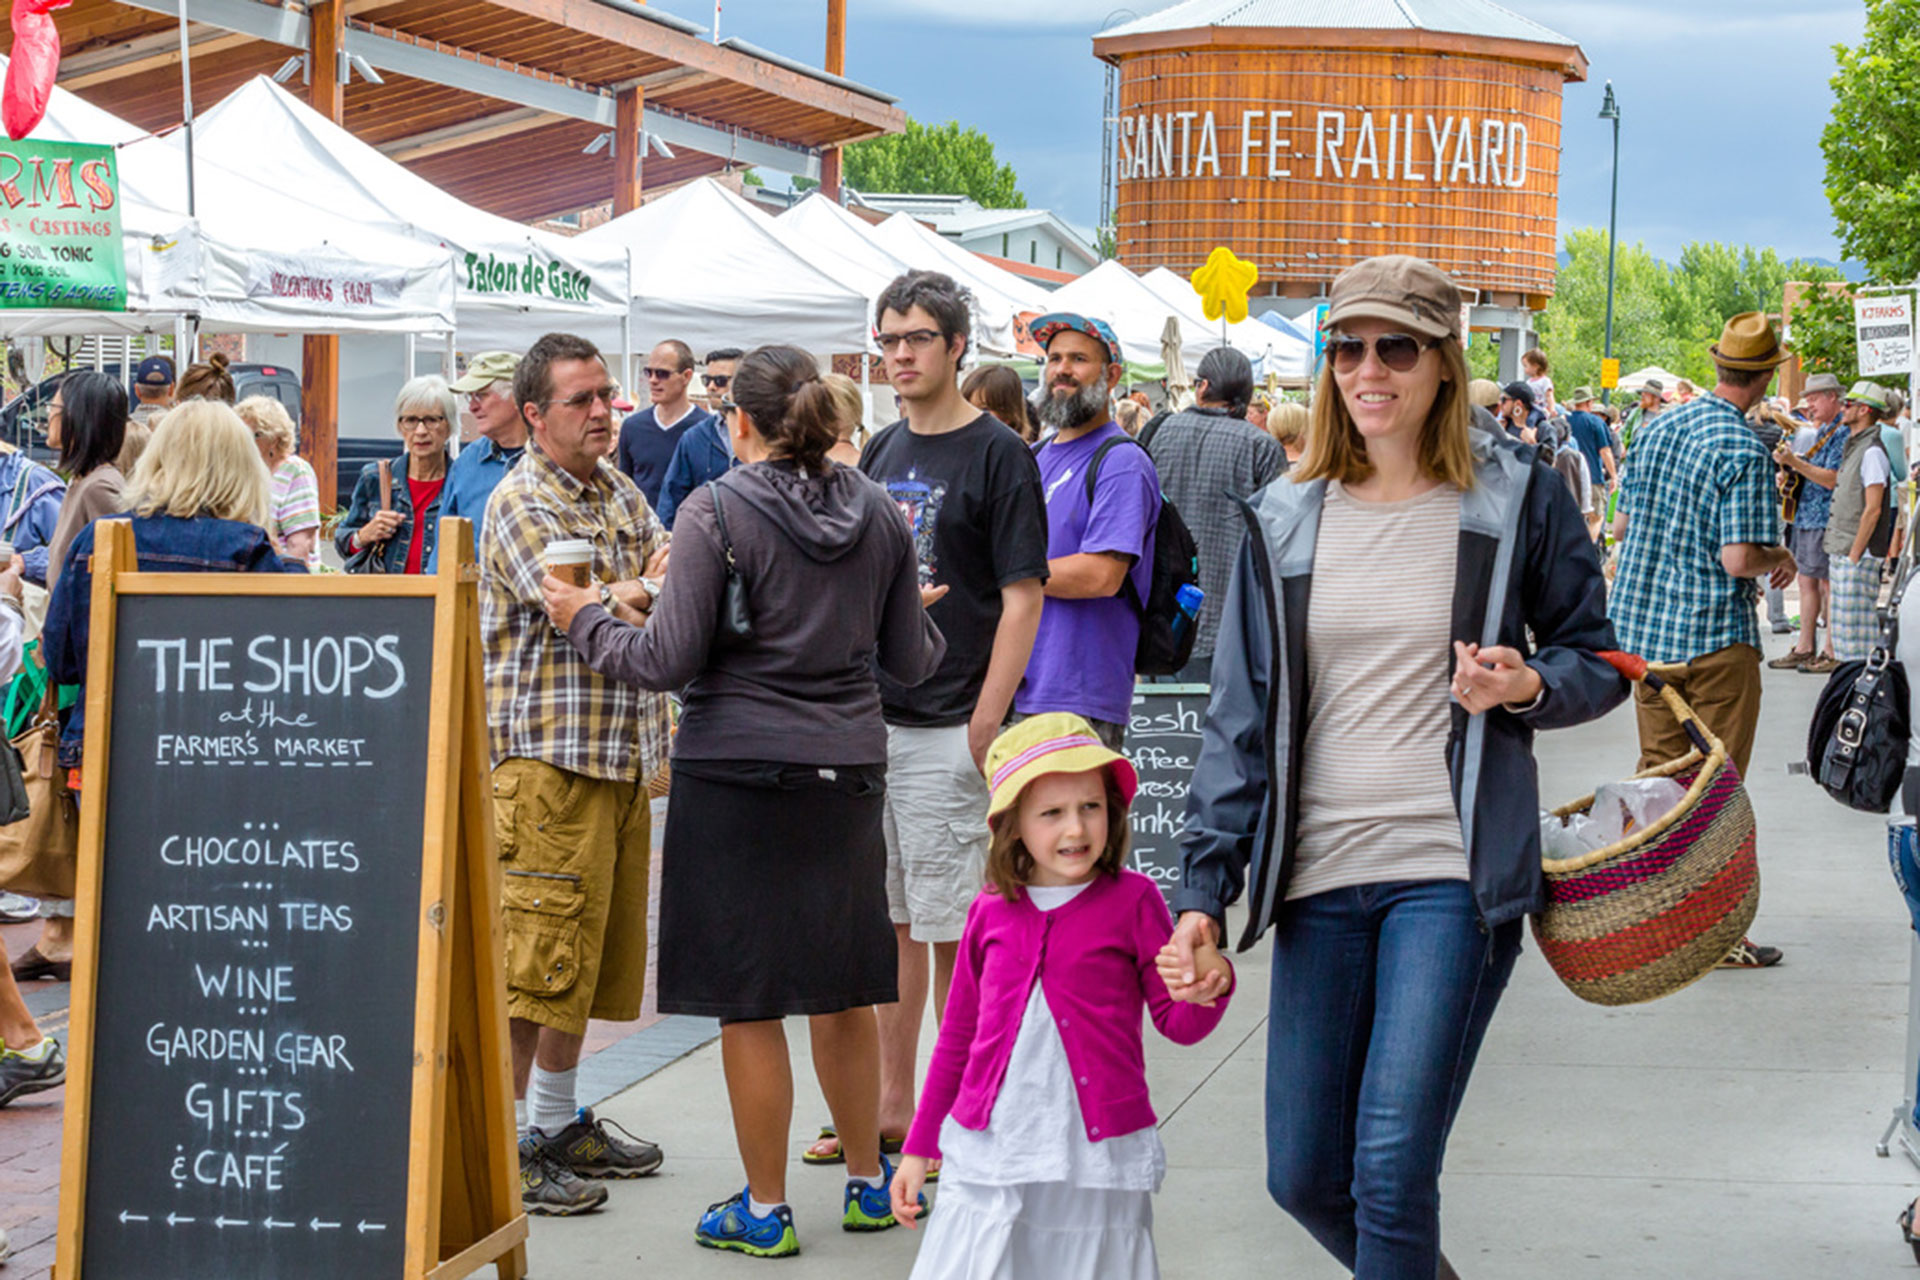 Santa Fe Farmers Market; Courtesy of Tourism Santa Fe